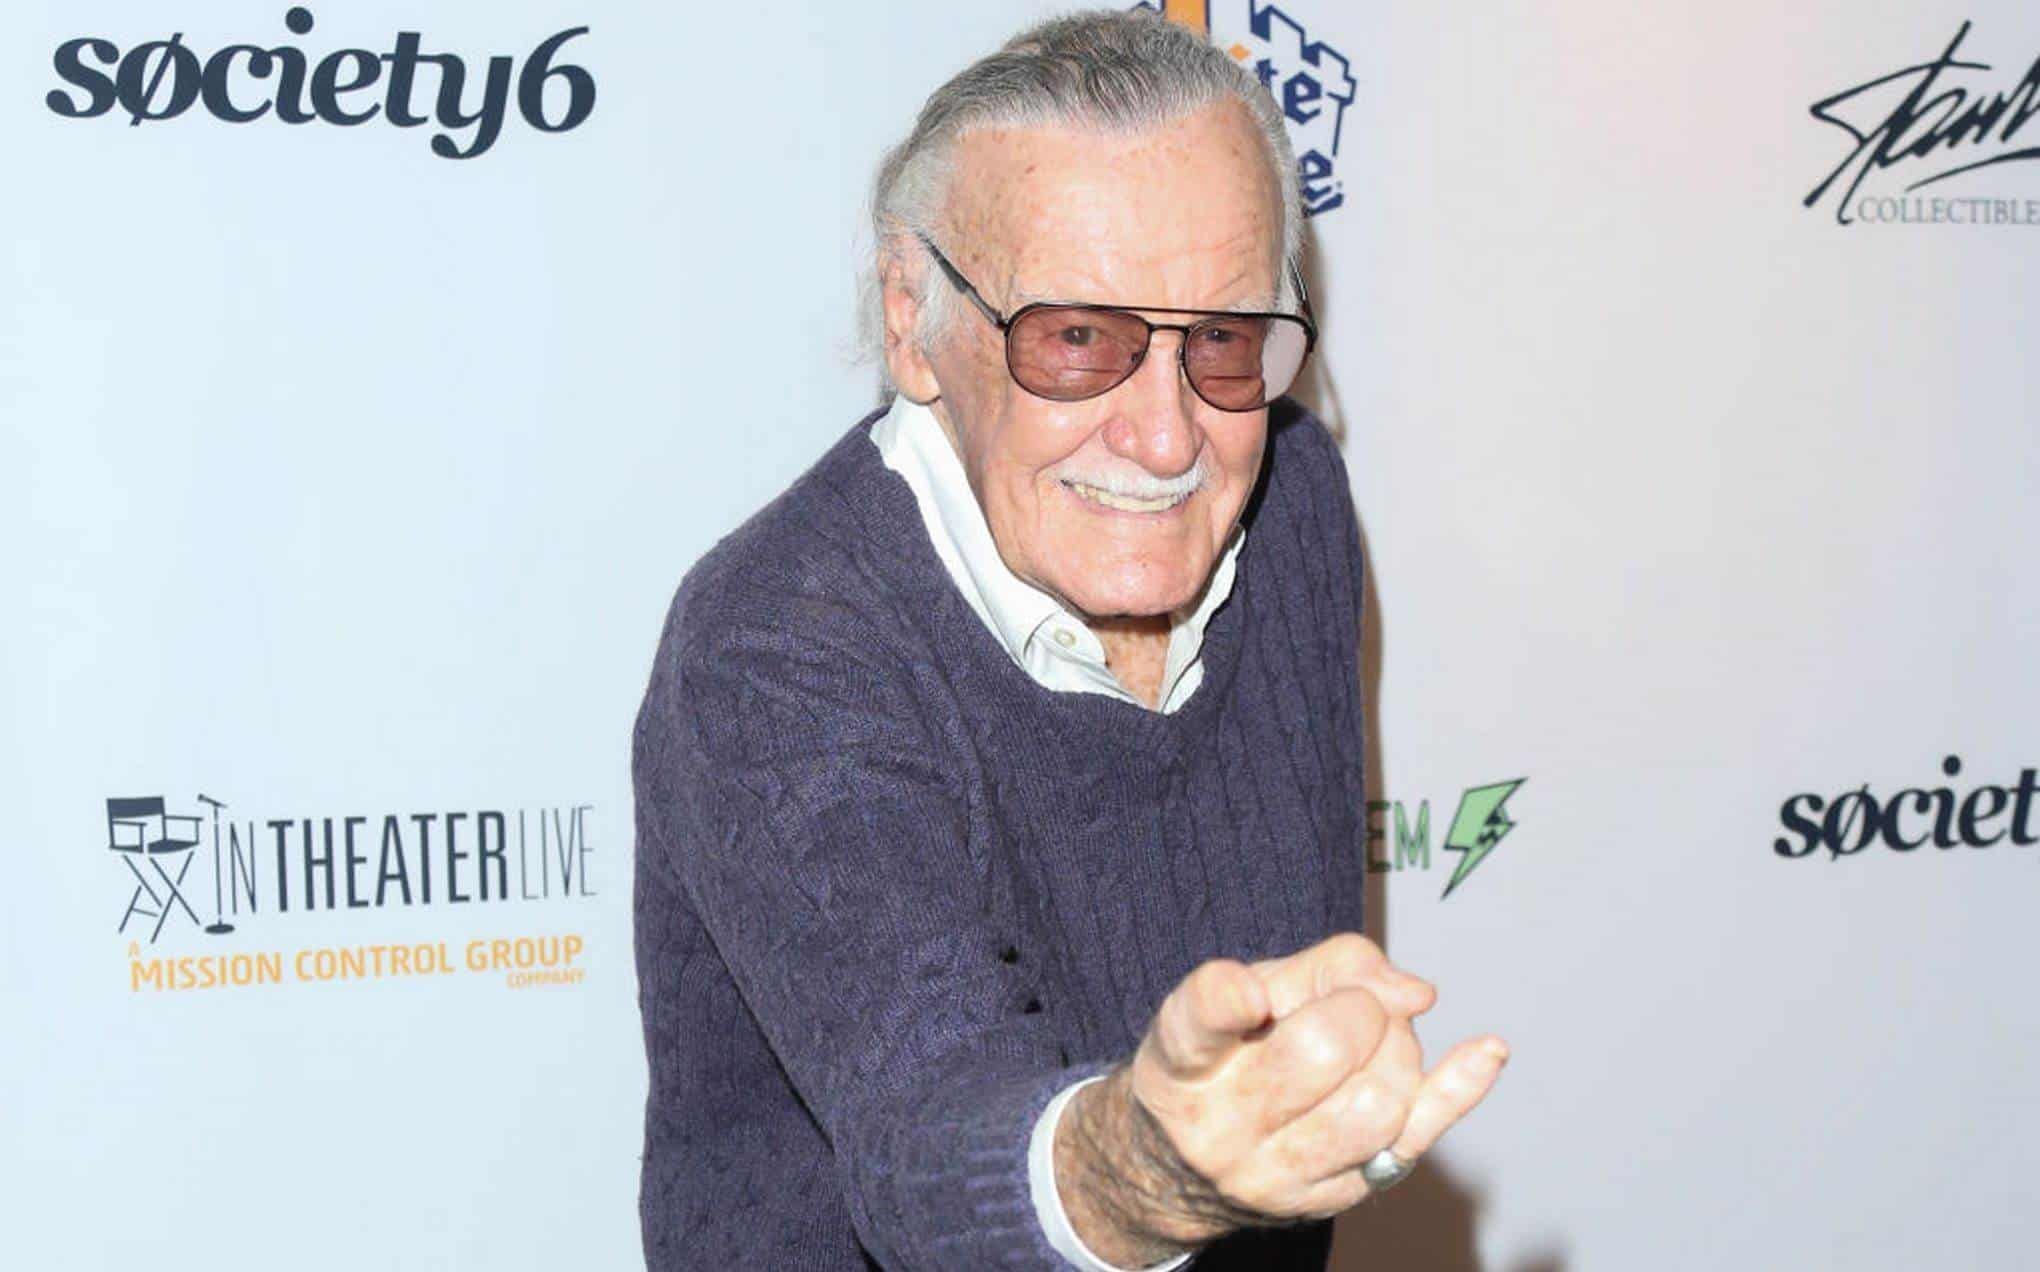 Enfermeras señalan a Stan Lee por acoso sexual